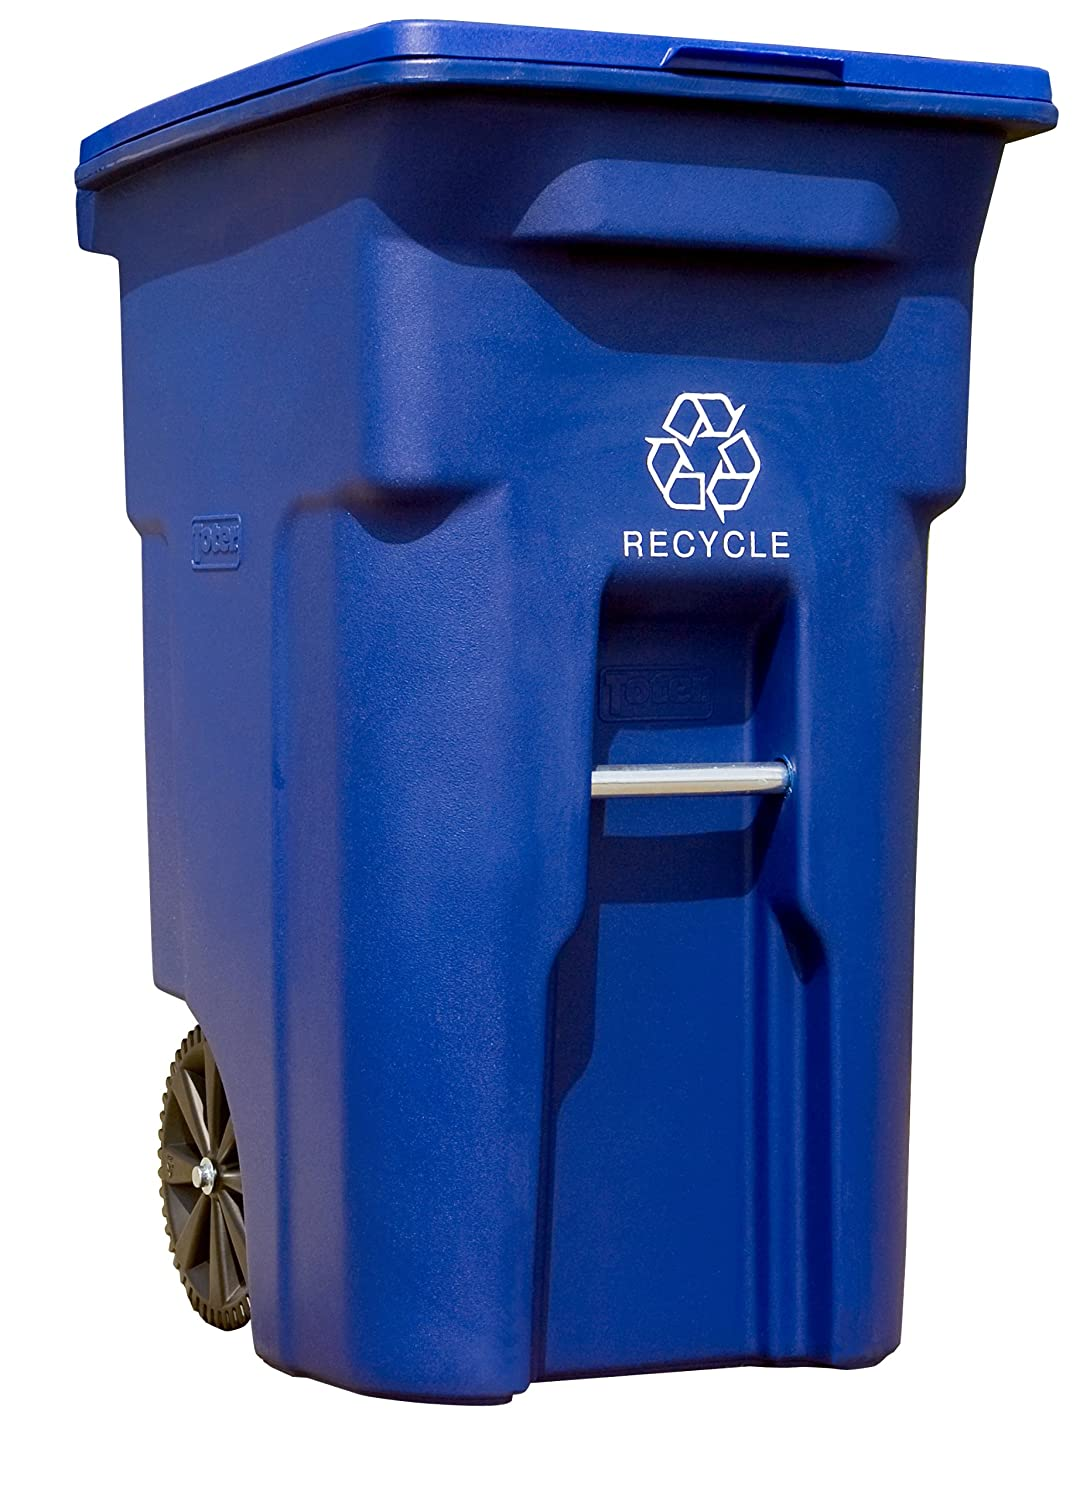 Top 10 Best Trash Containers Reviews With Wheels 2016 2017